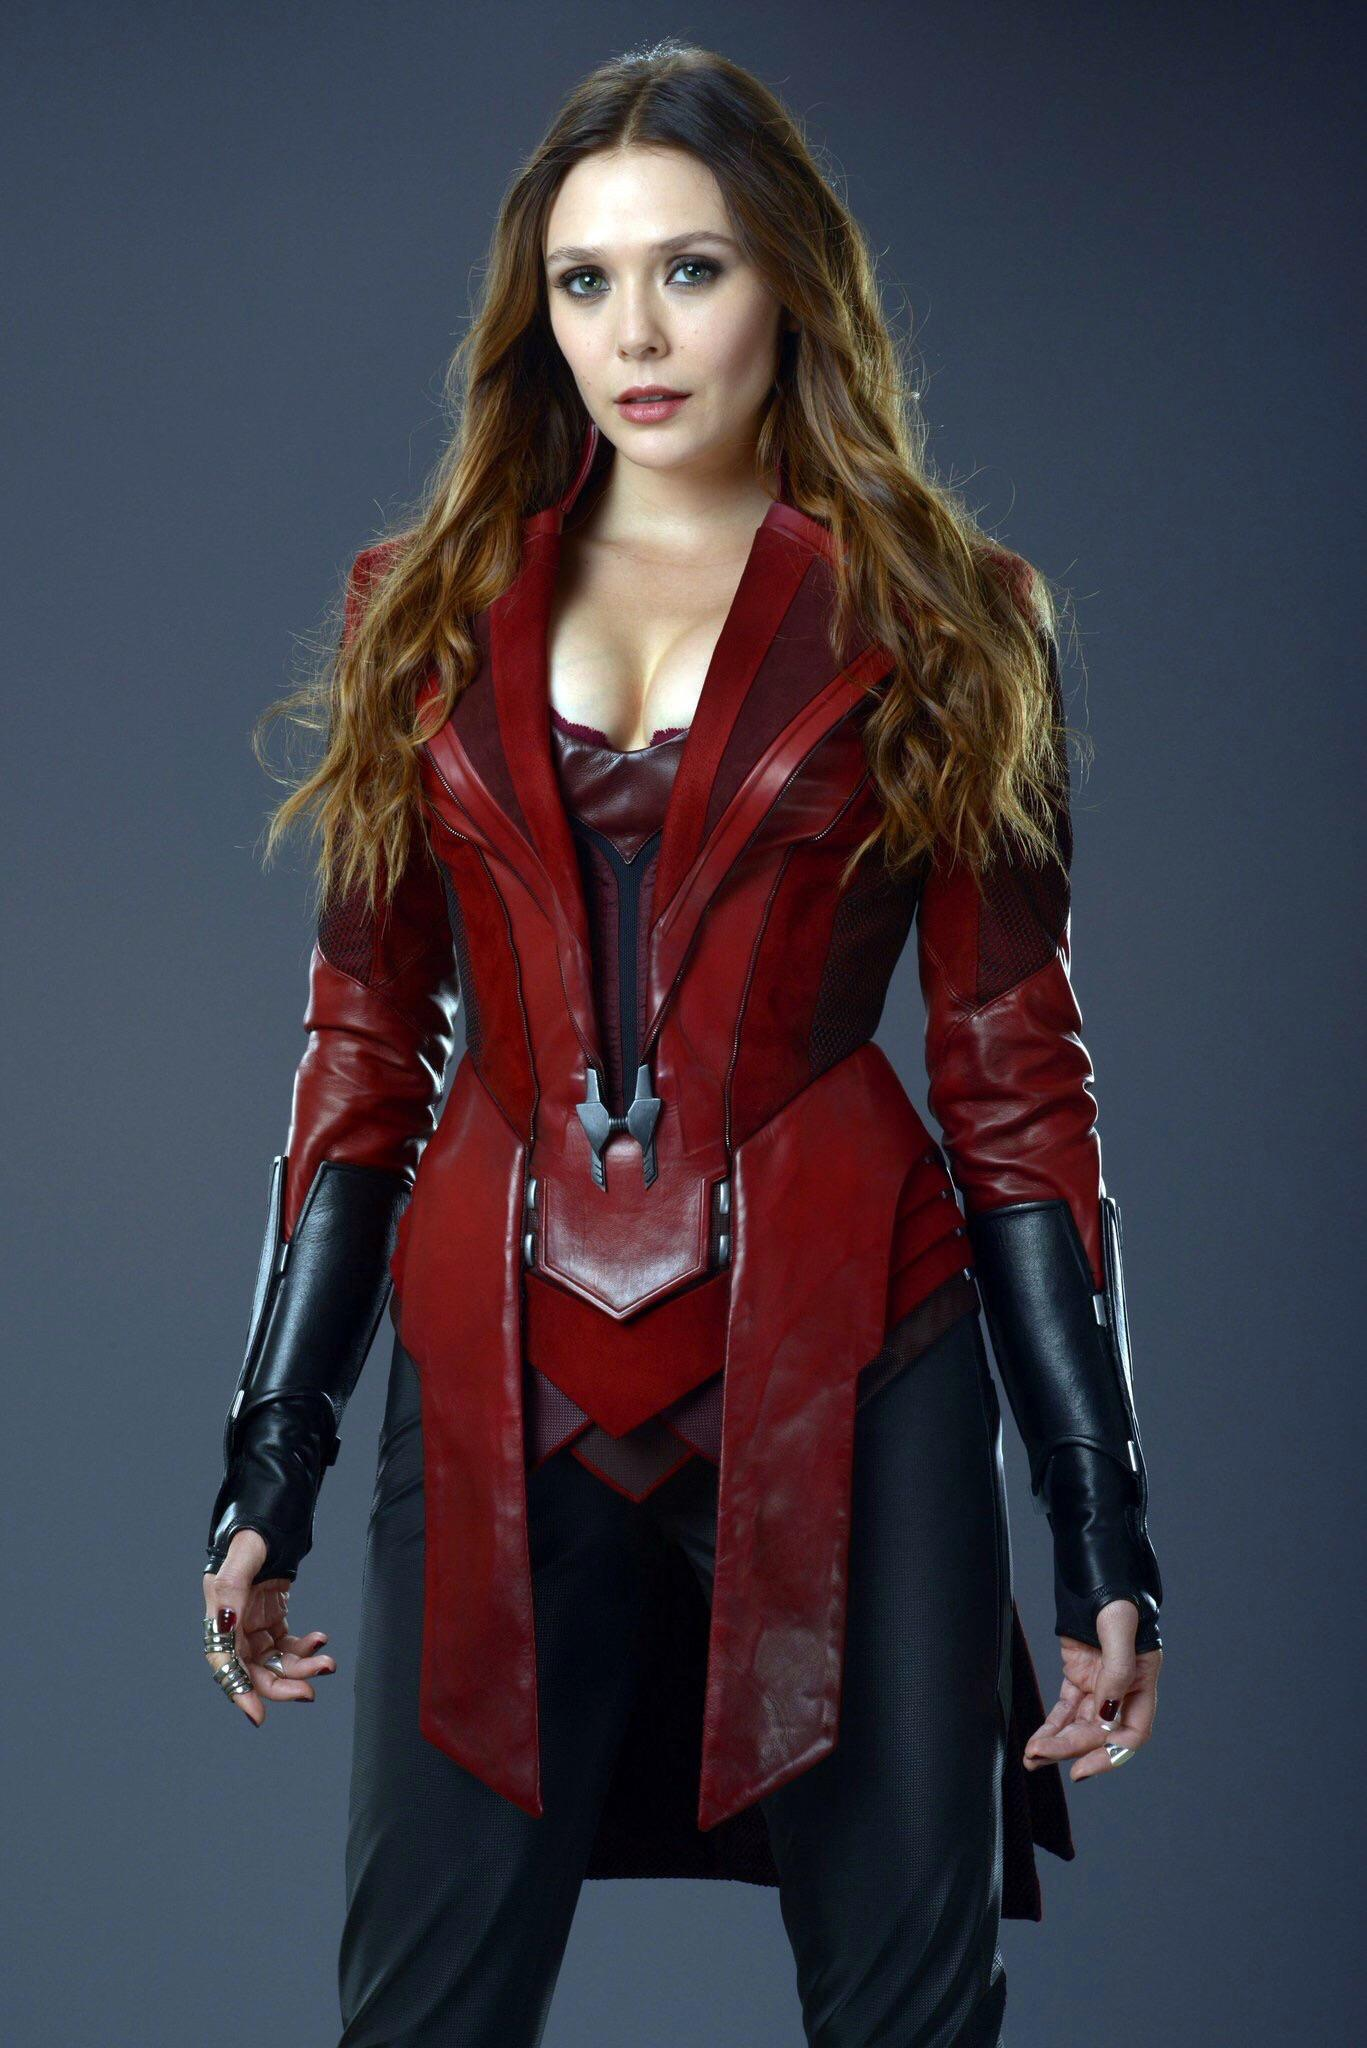 elizabeth olsen - photo #22